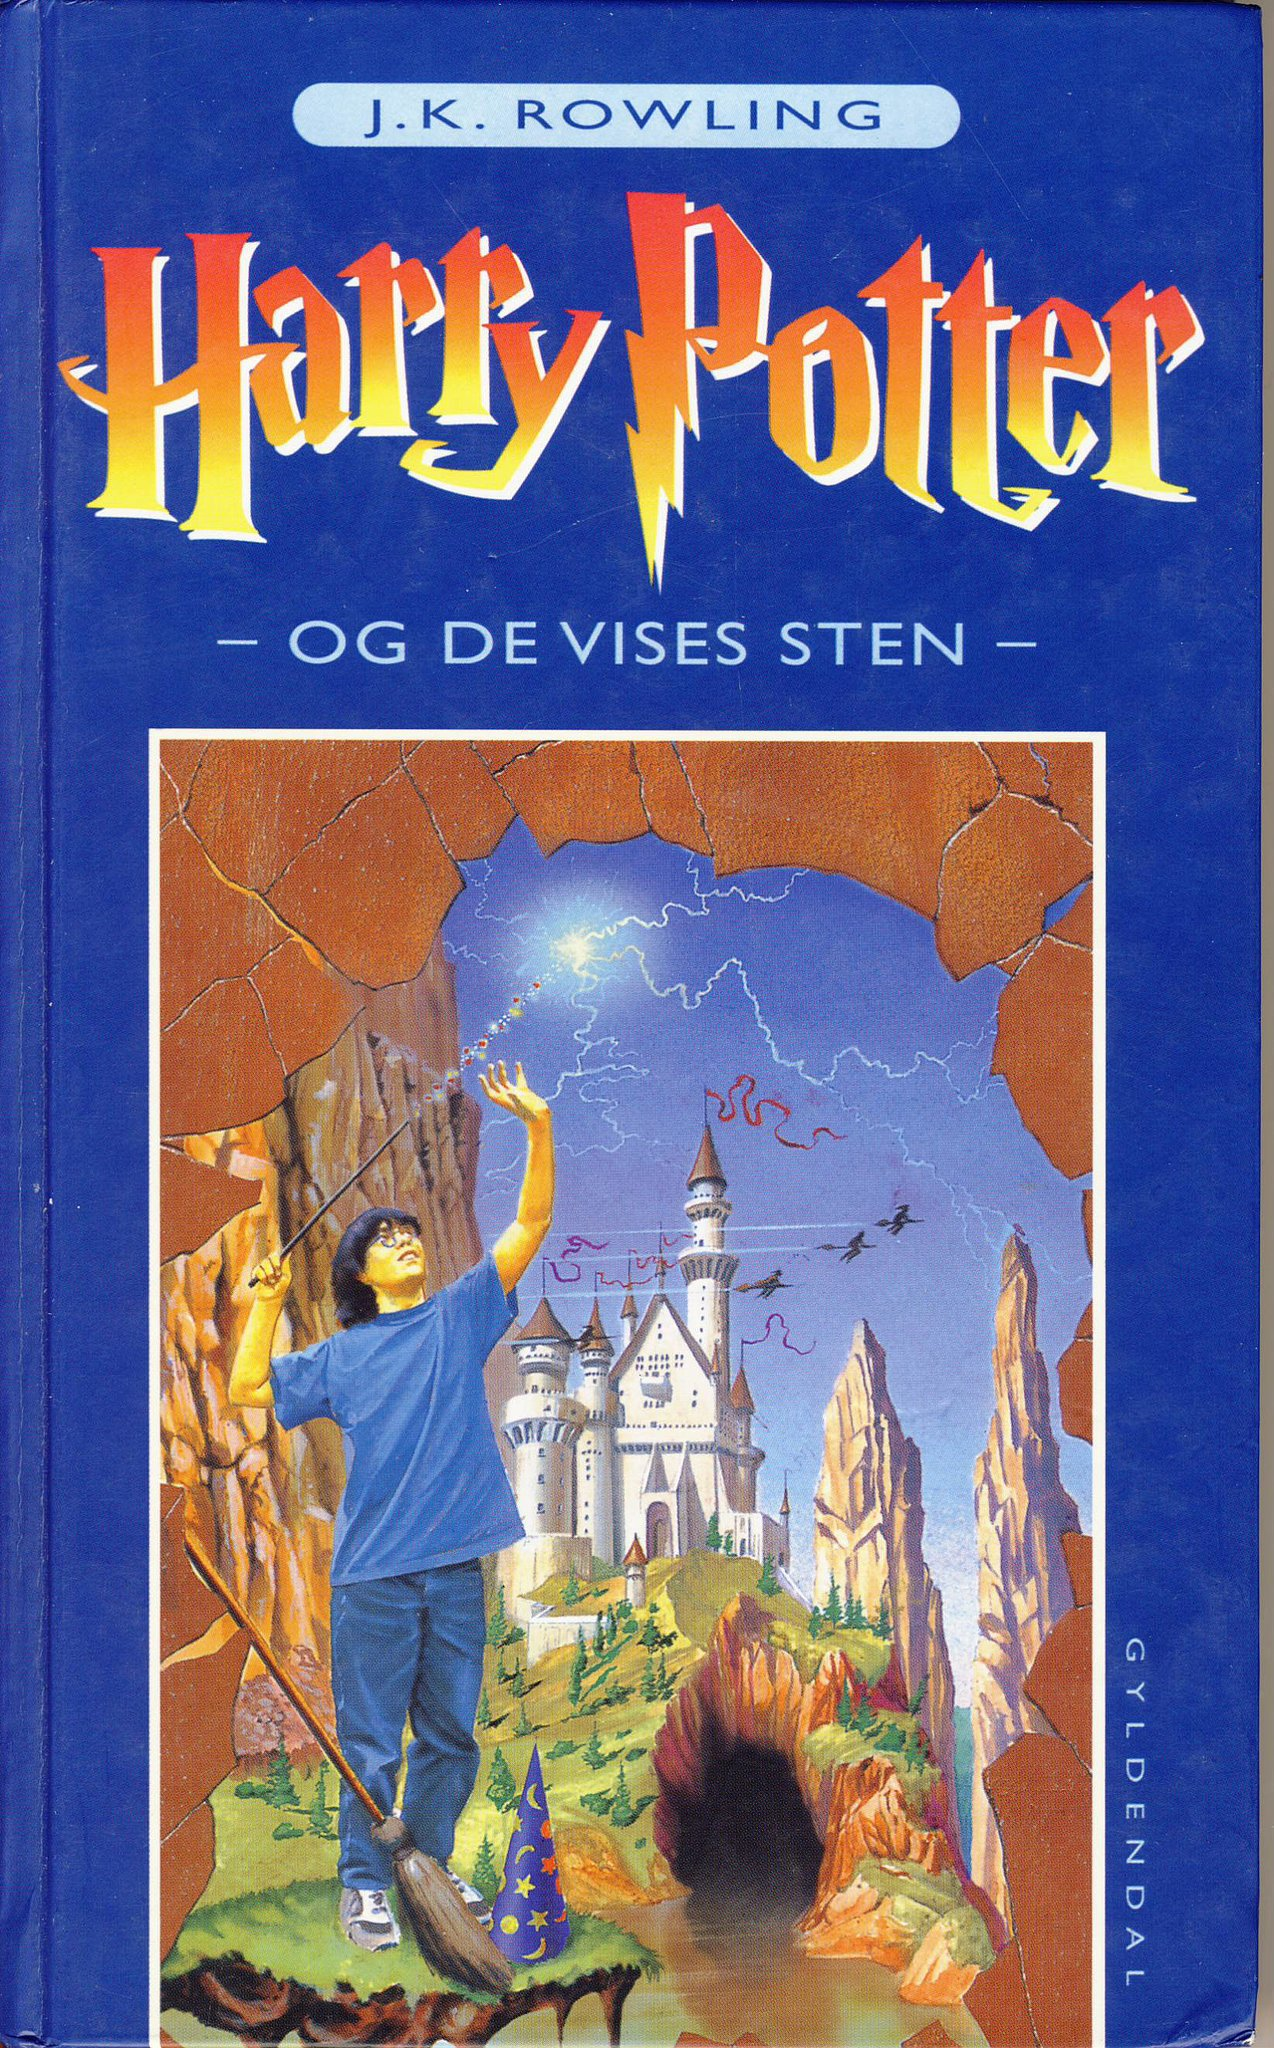 Harry Potter and the Philosopher's Stone, Denmark